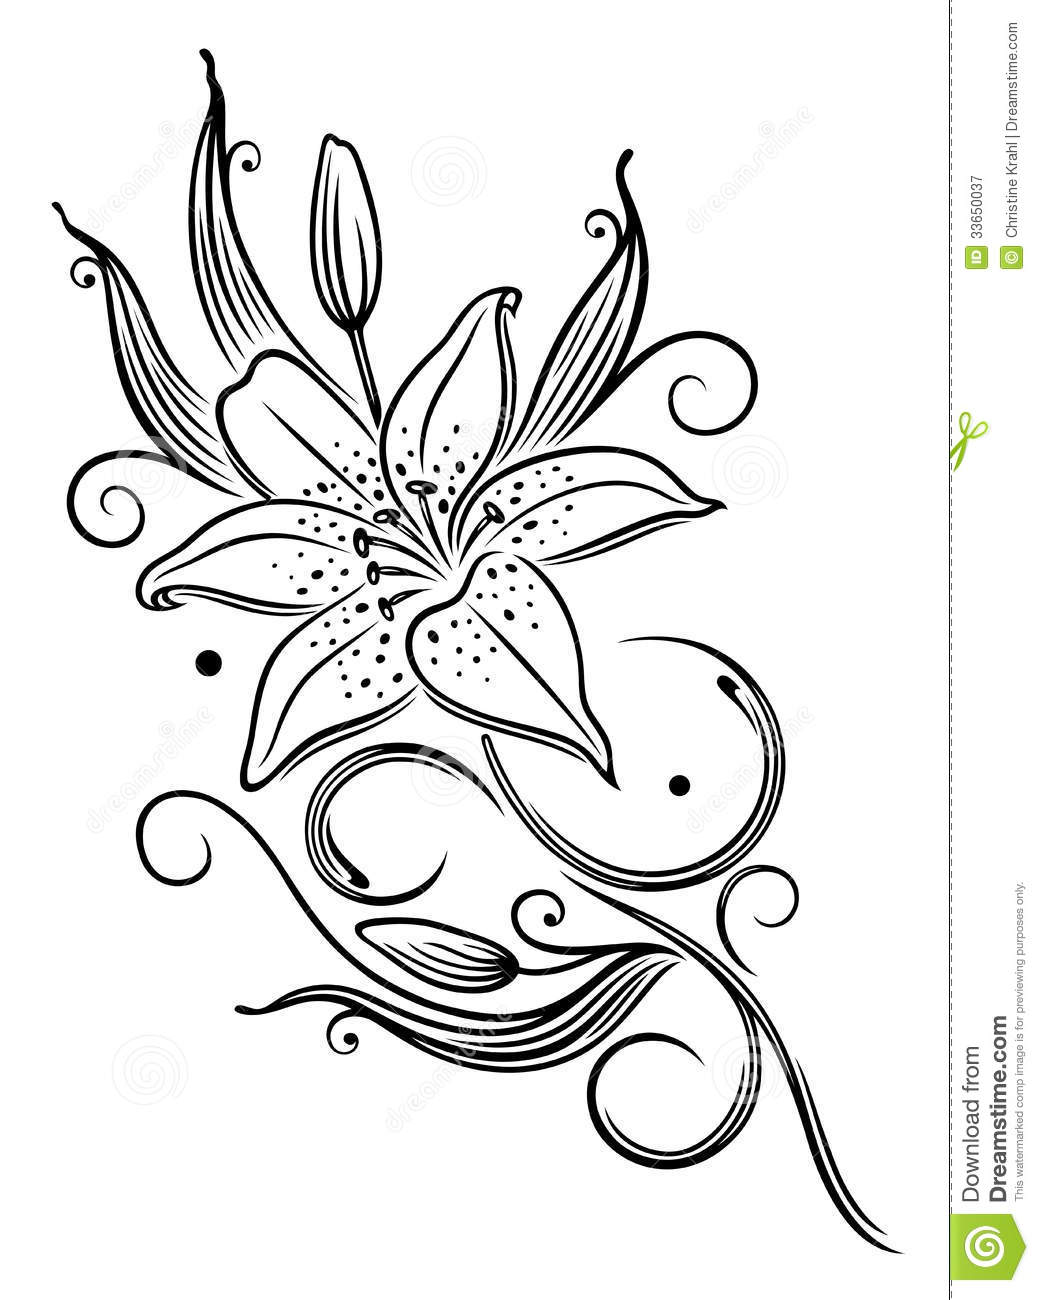 lily flower royalty free stock photography image 33650037